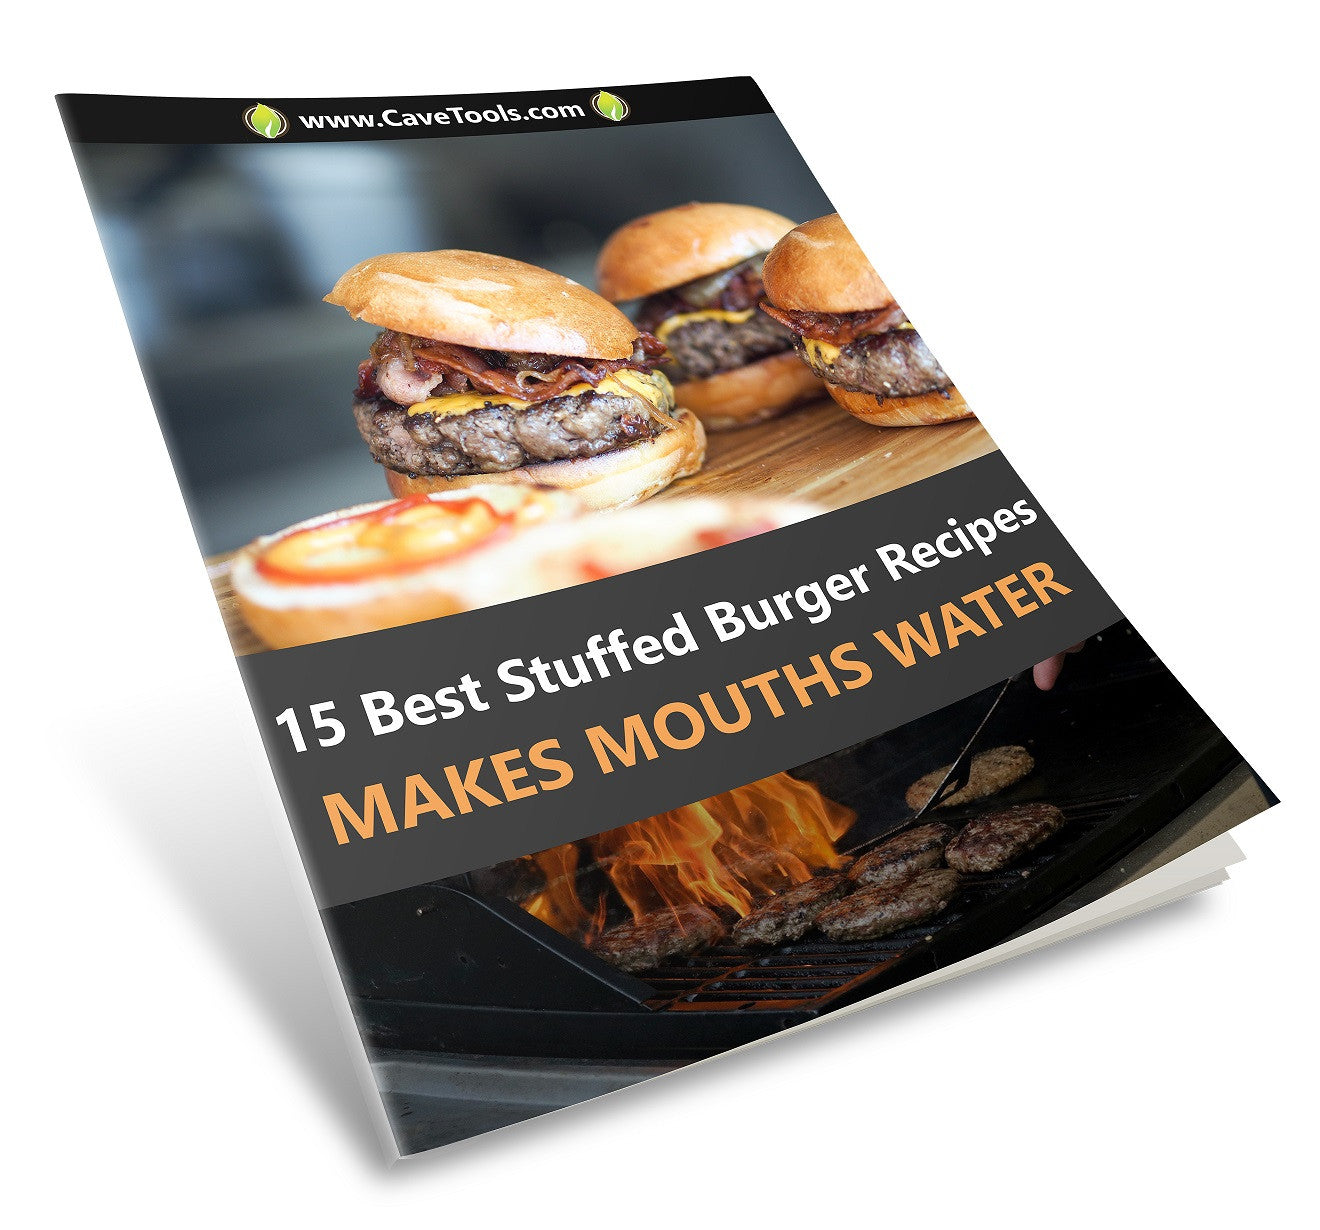 15 best stuffed burgers recipe book free download cave tools 15 best stuffed burgers recipe book free download forumfinder Gallery